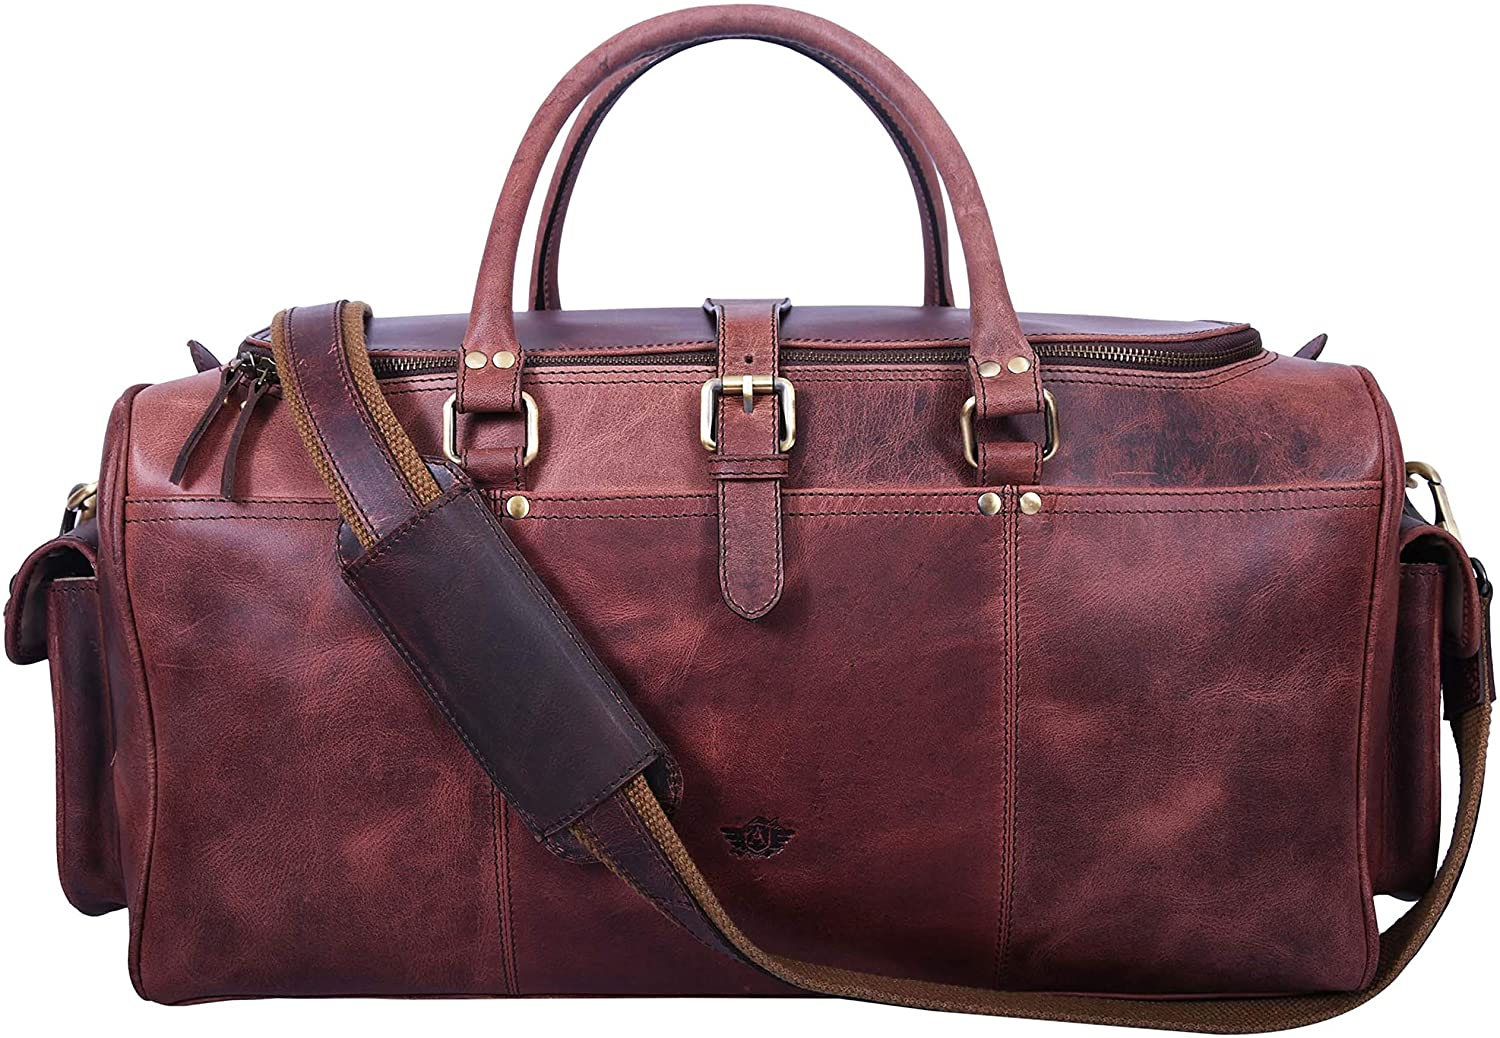 A Addey Supply Company Puro Lusso Leather Duffle Overnight Bag